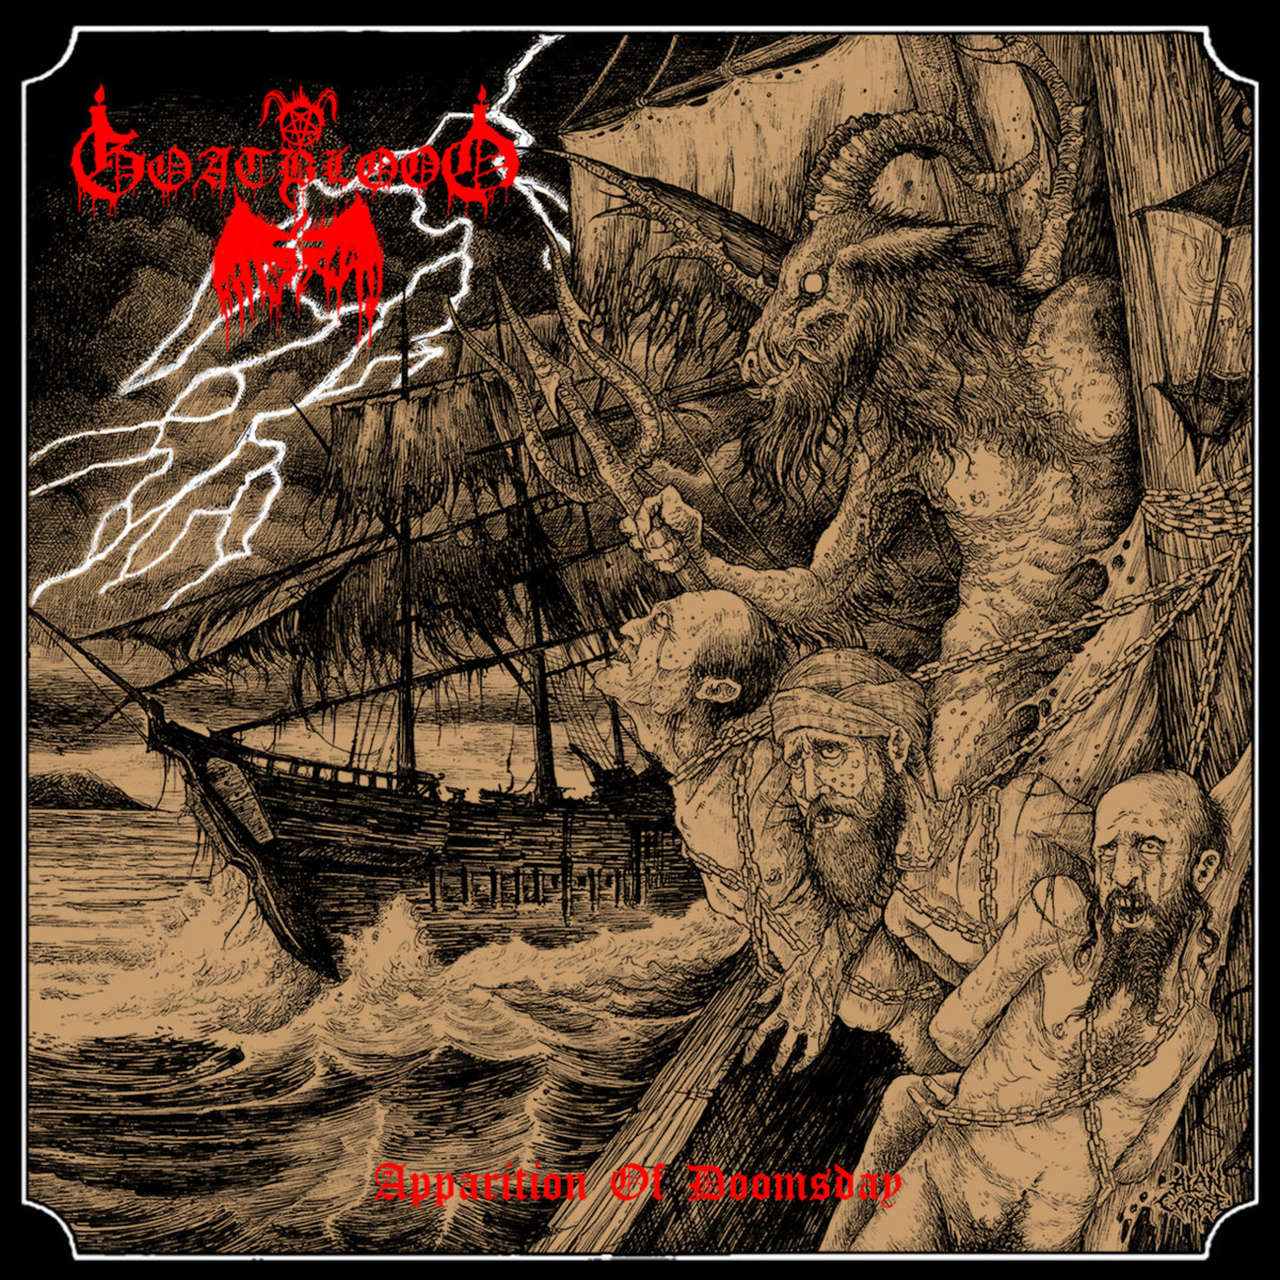 Goatblood - Apparition of Doomsday (CD)